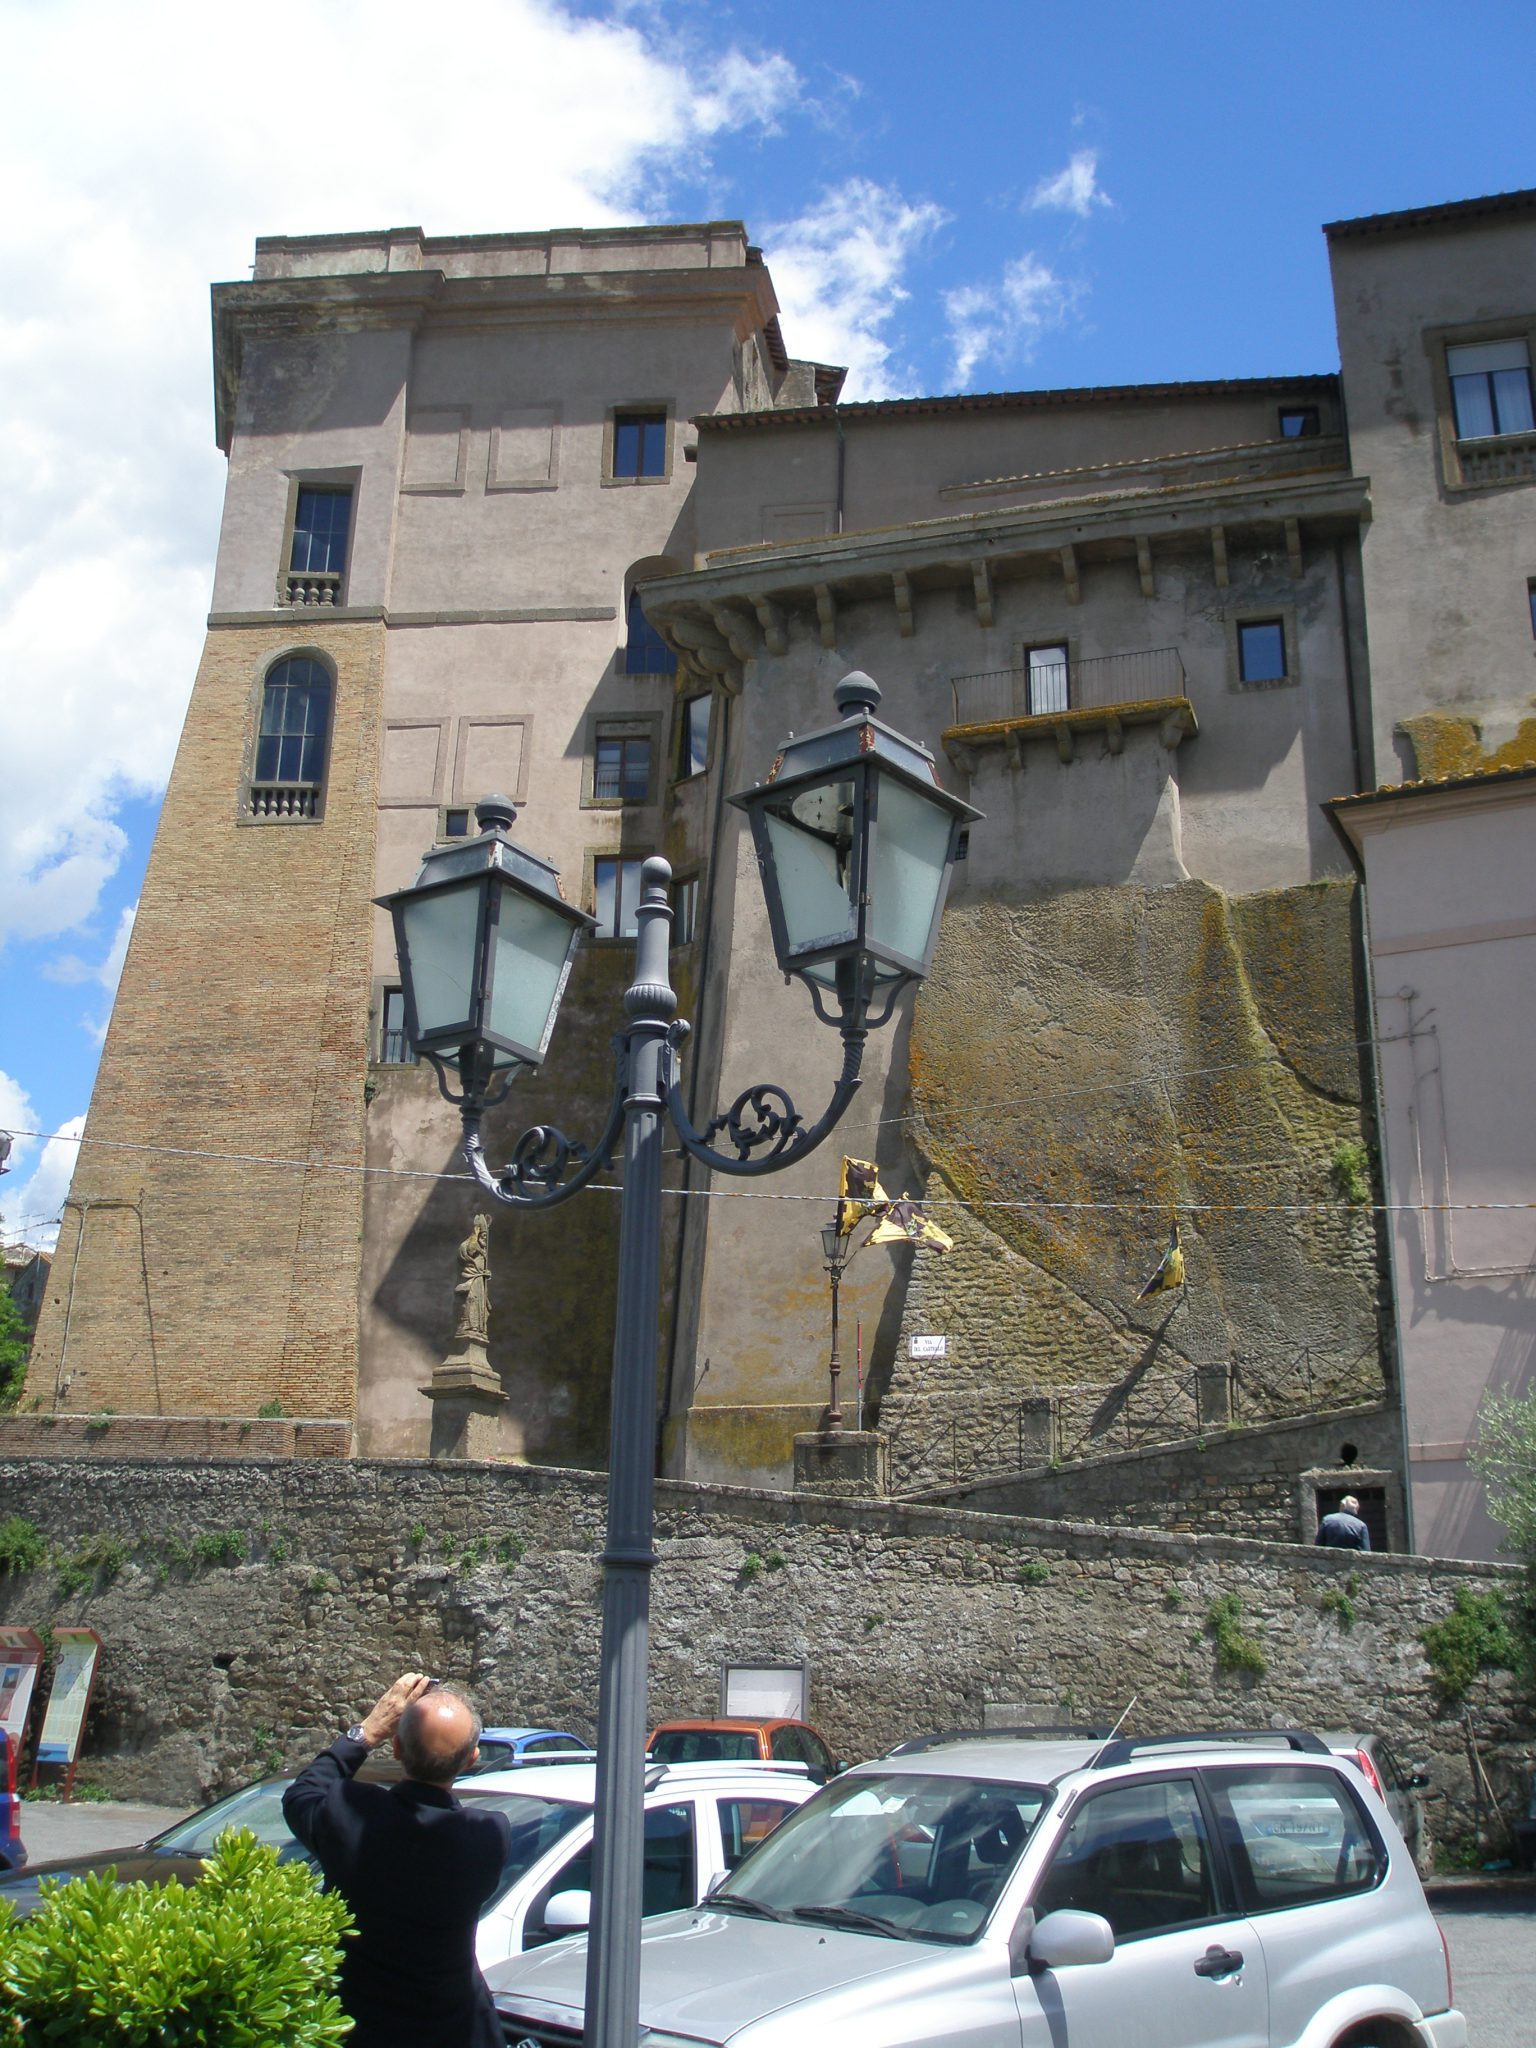 Anacleto photographs the Castle of the Duke of Orsino.